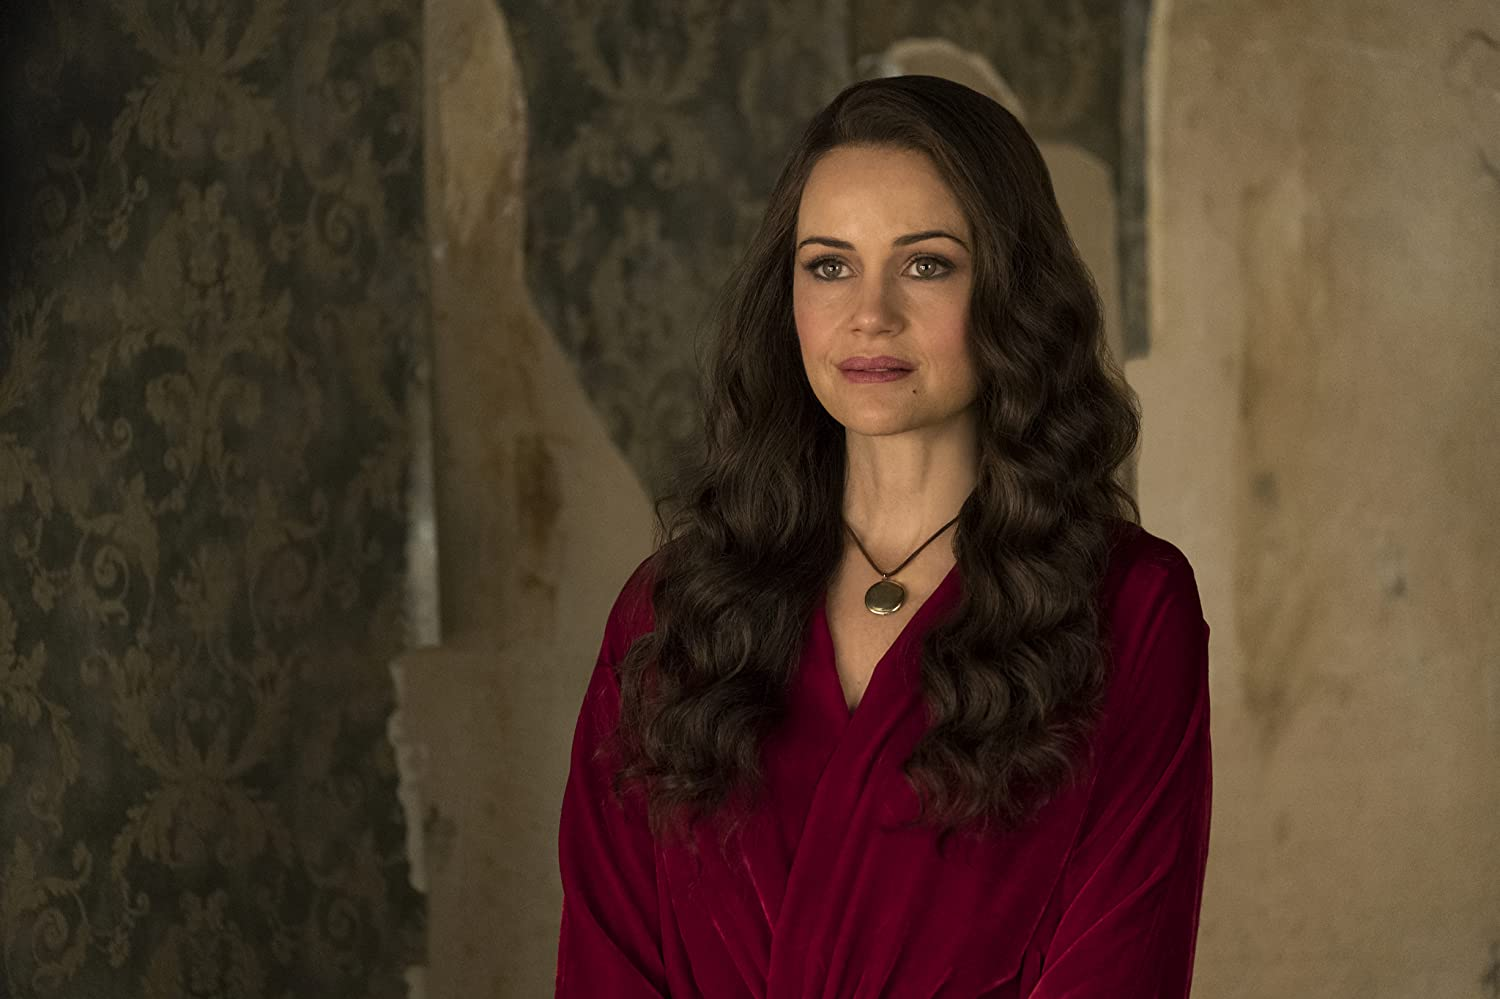 Carla Gugino in The Haunting of Hill House (2018)